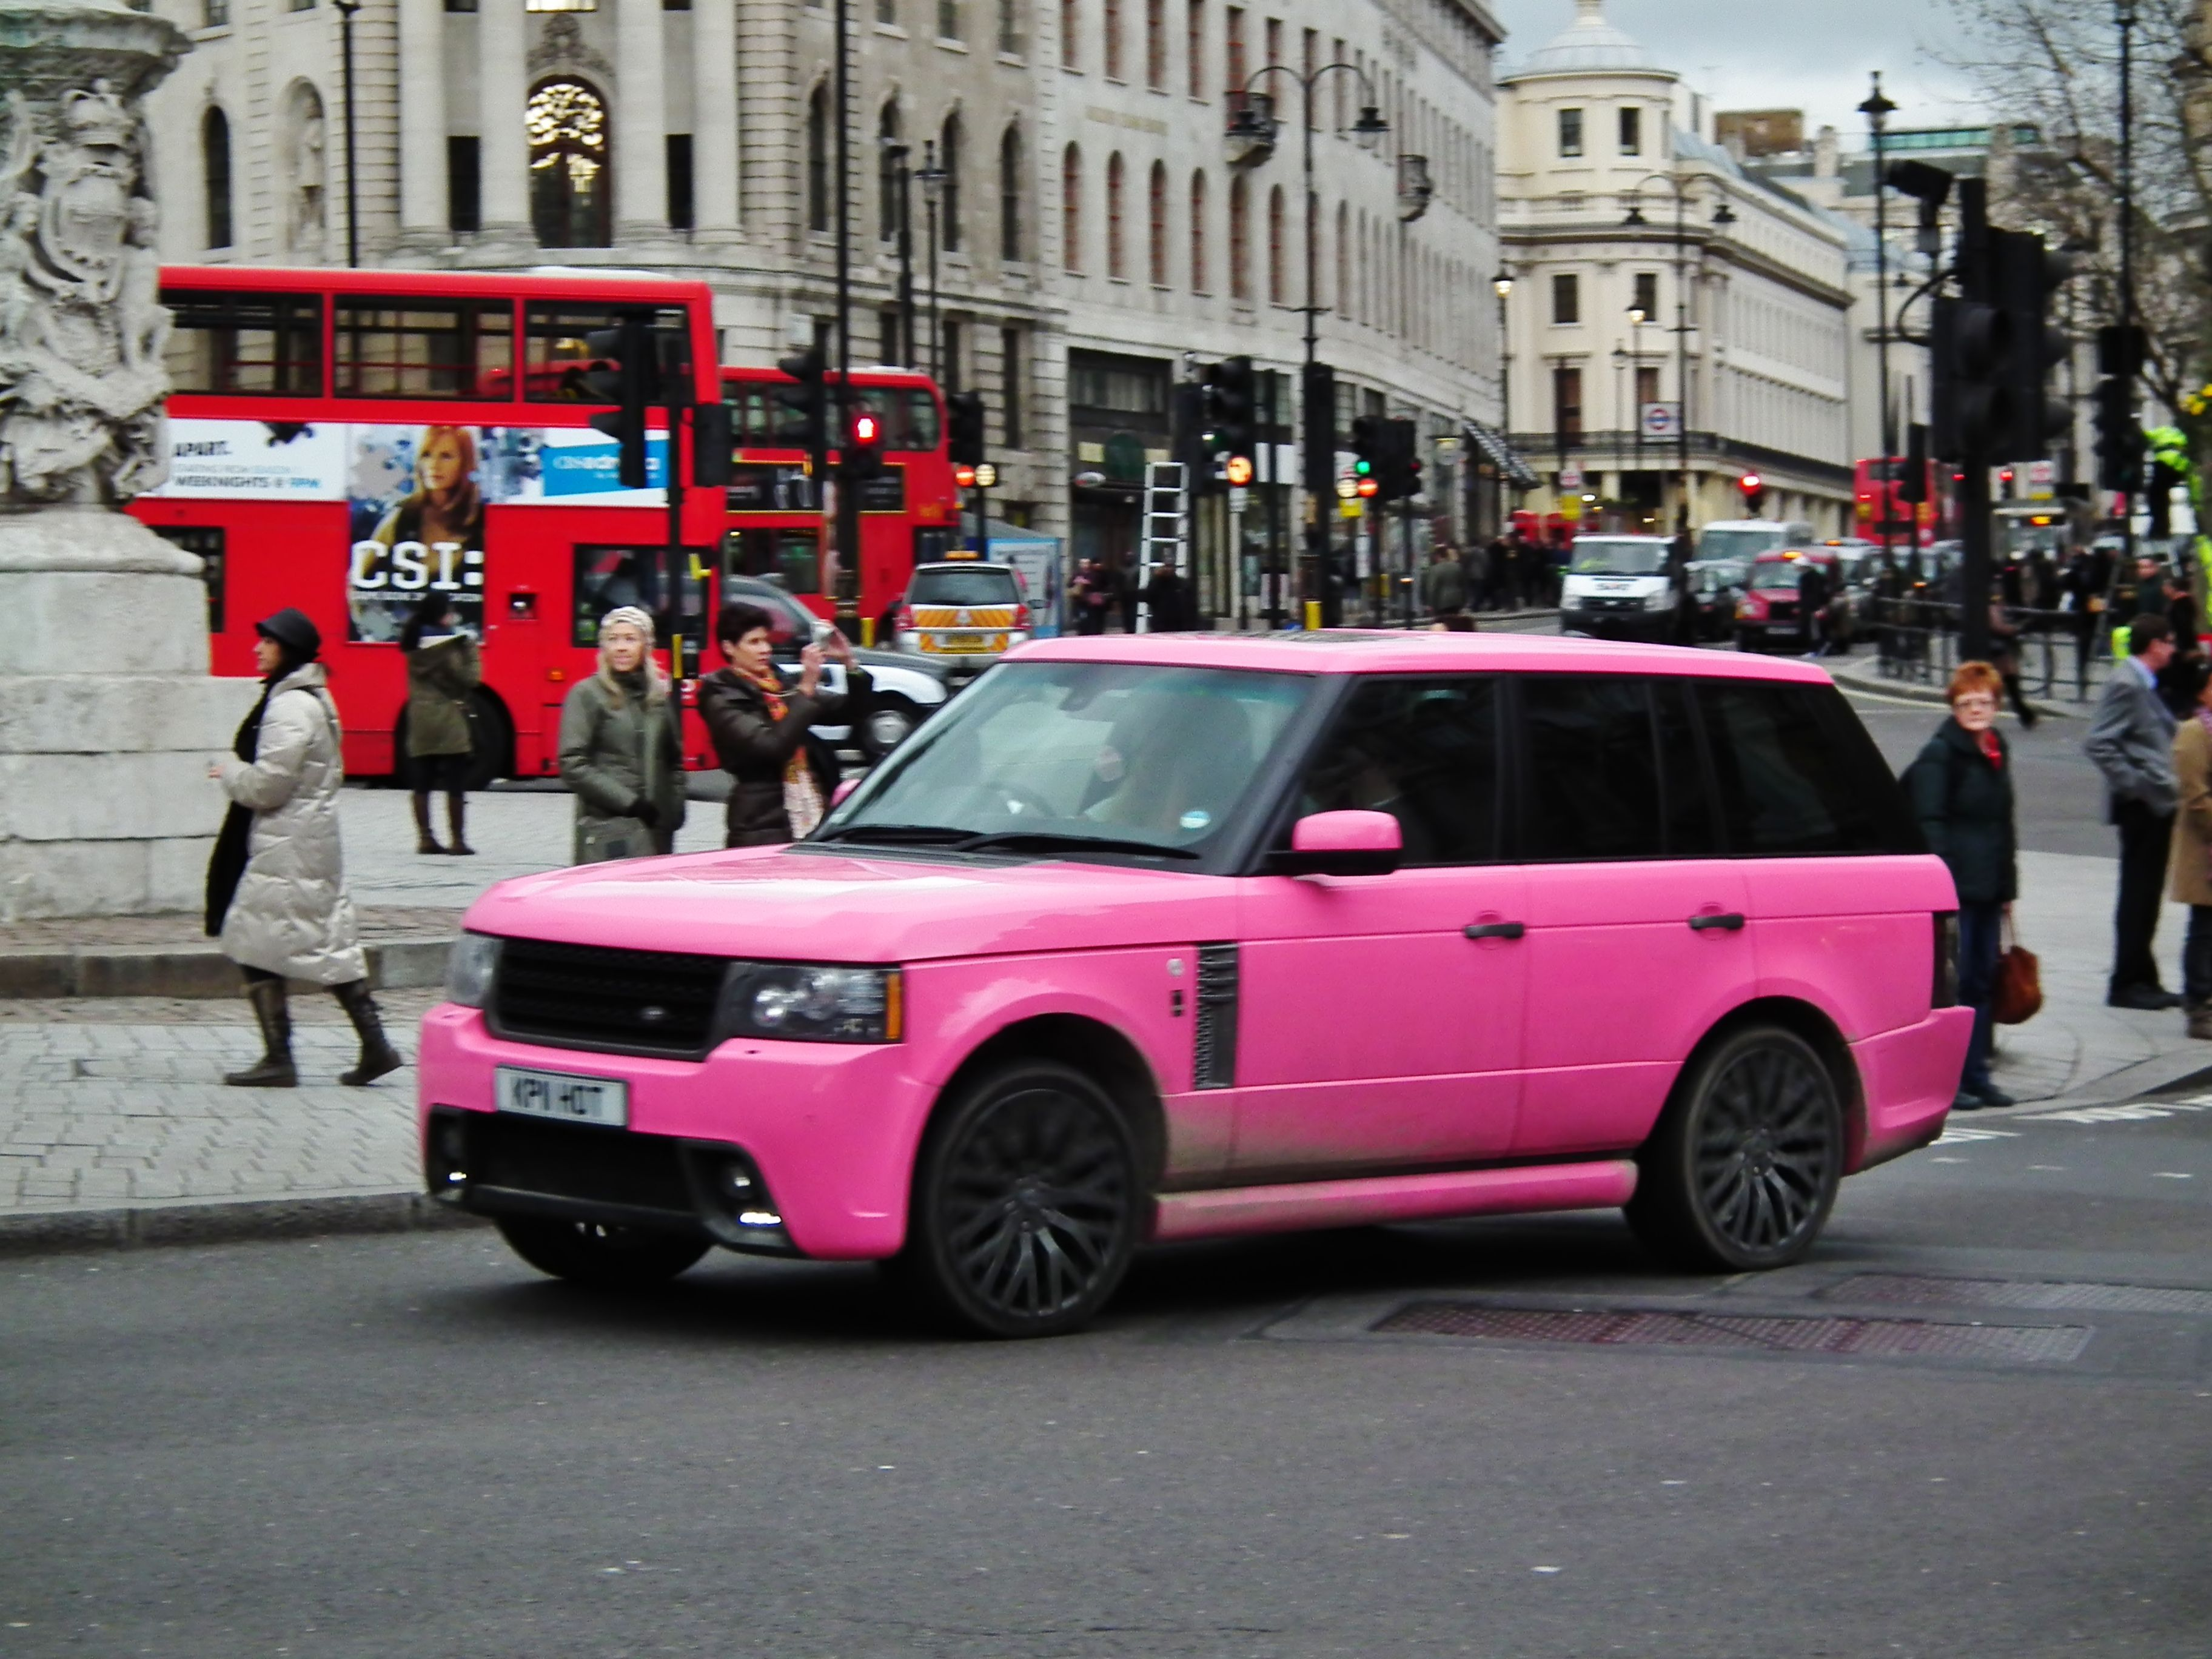 2- Pink on a small car may be but bright Pink on a Range Rover? oh no #pinkrangerovers 2- Pink on a small car may be but bright Pink on a Range Rover? oh no #pinkrangerovers